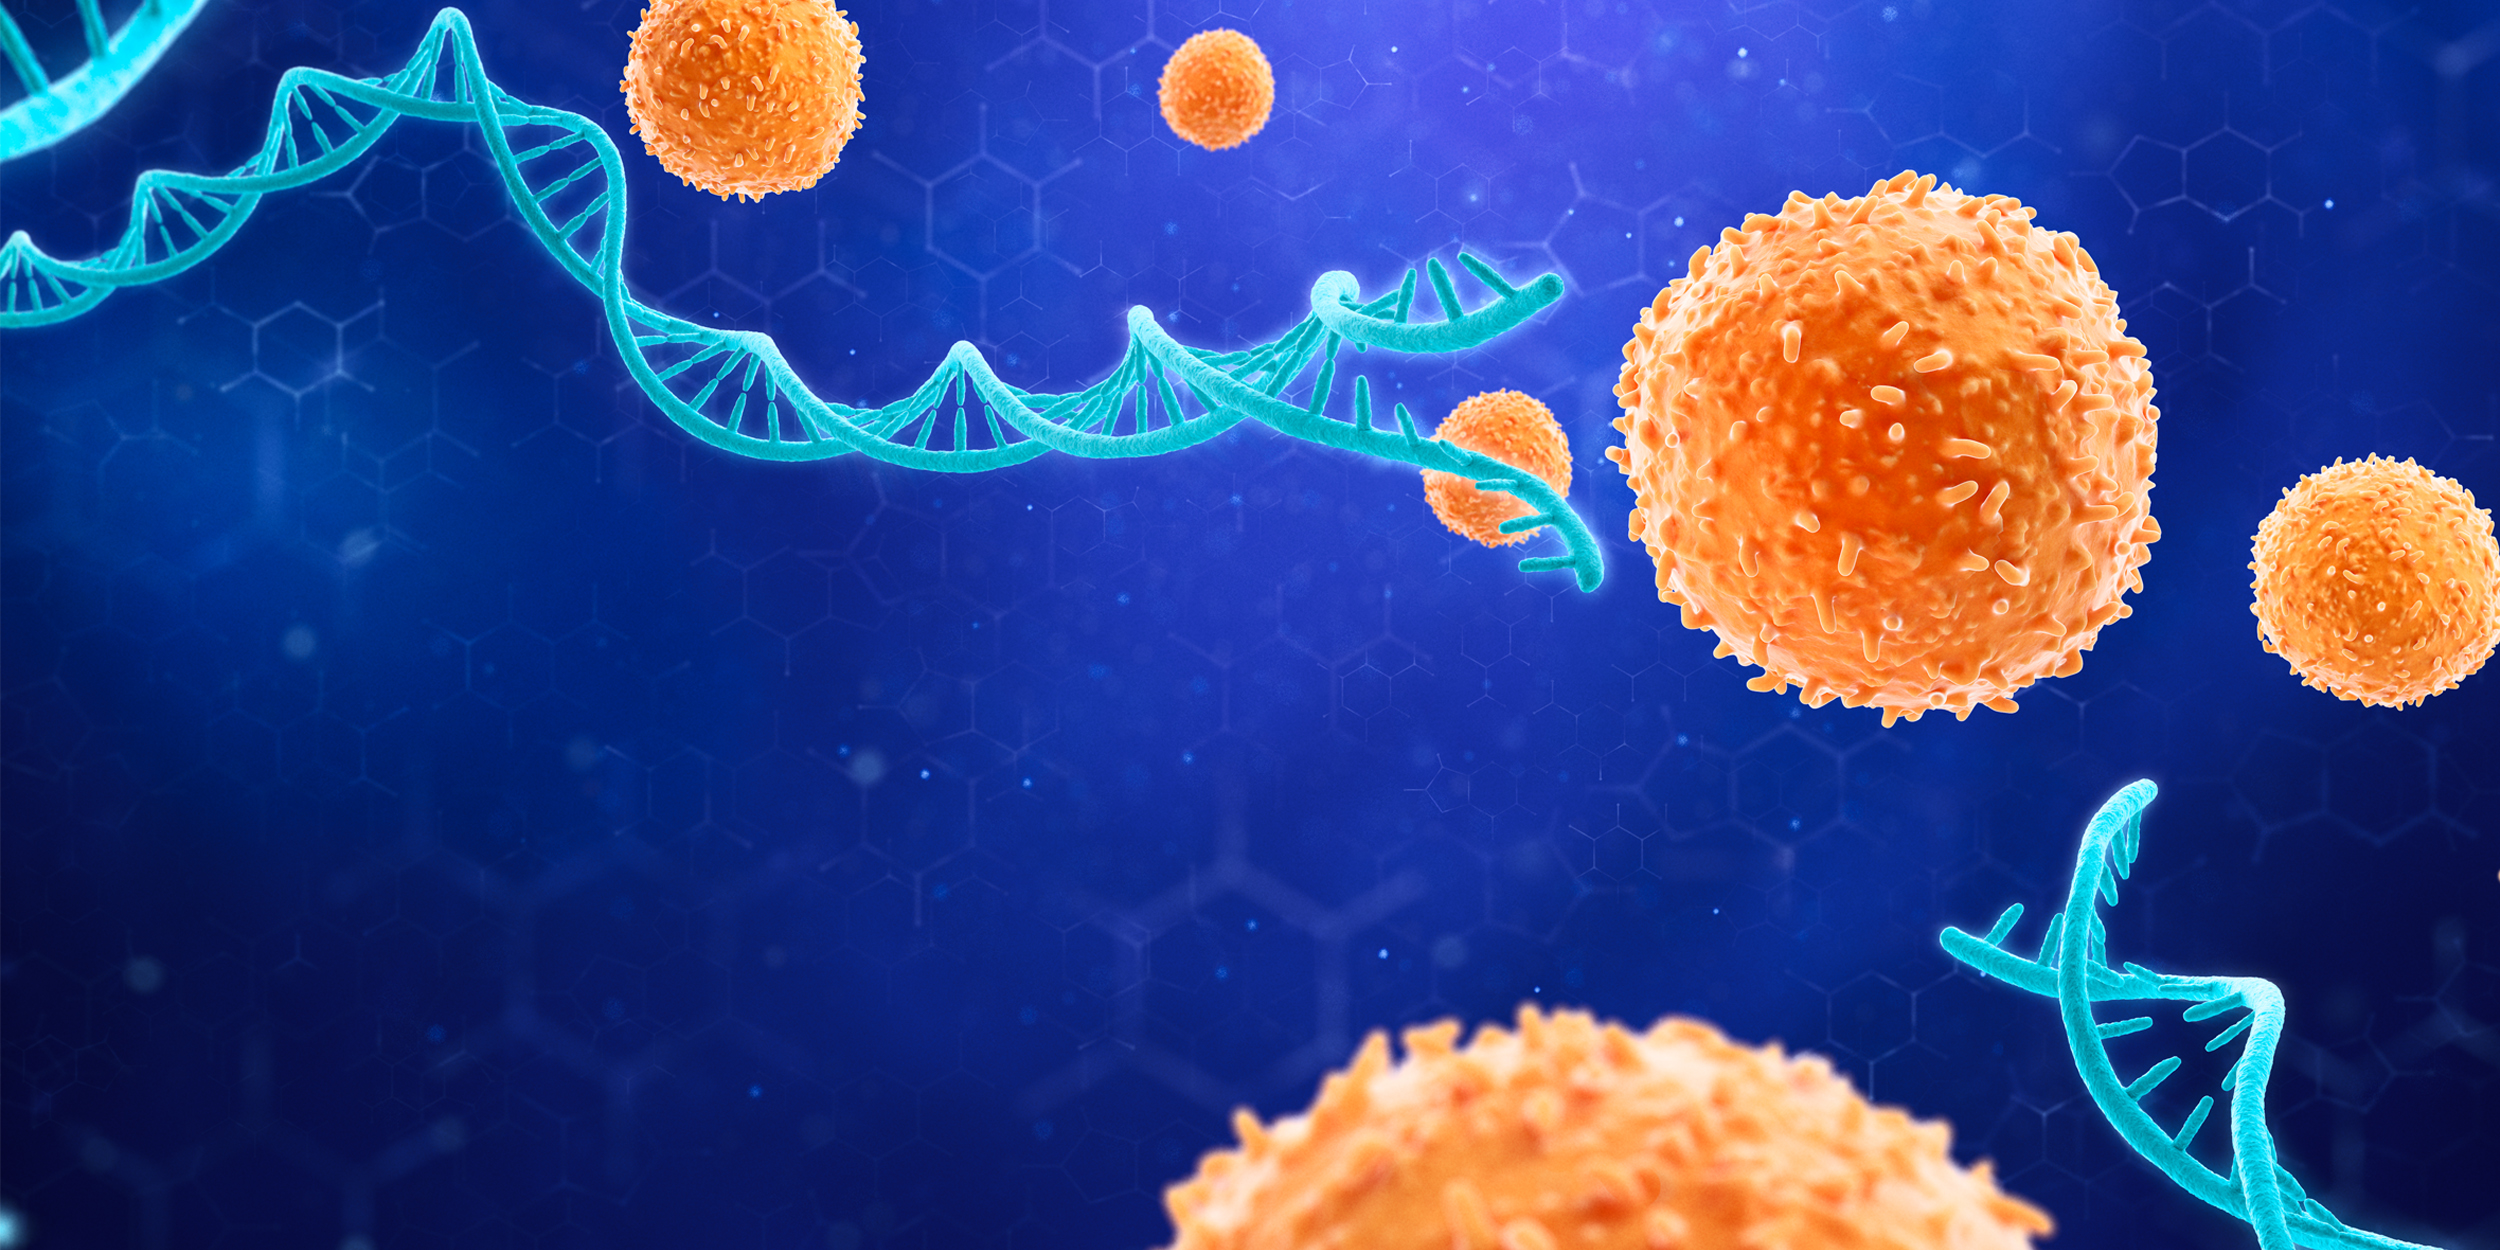 Achieve new heights in your genomic analysis